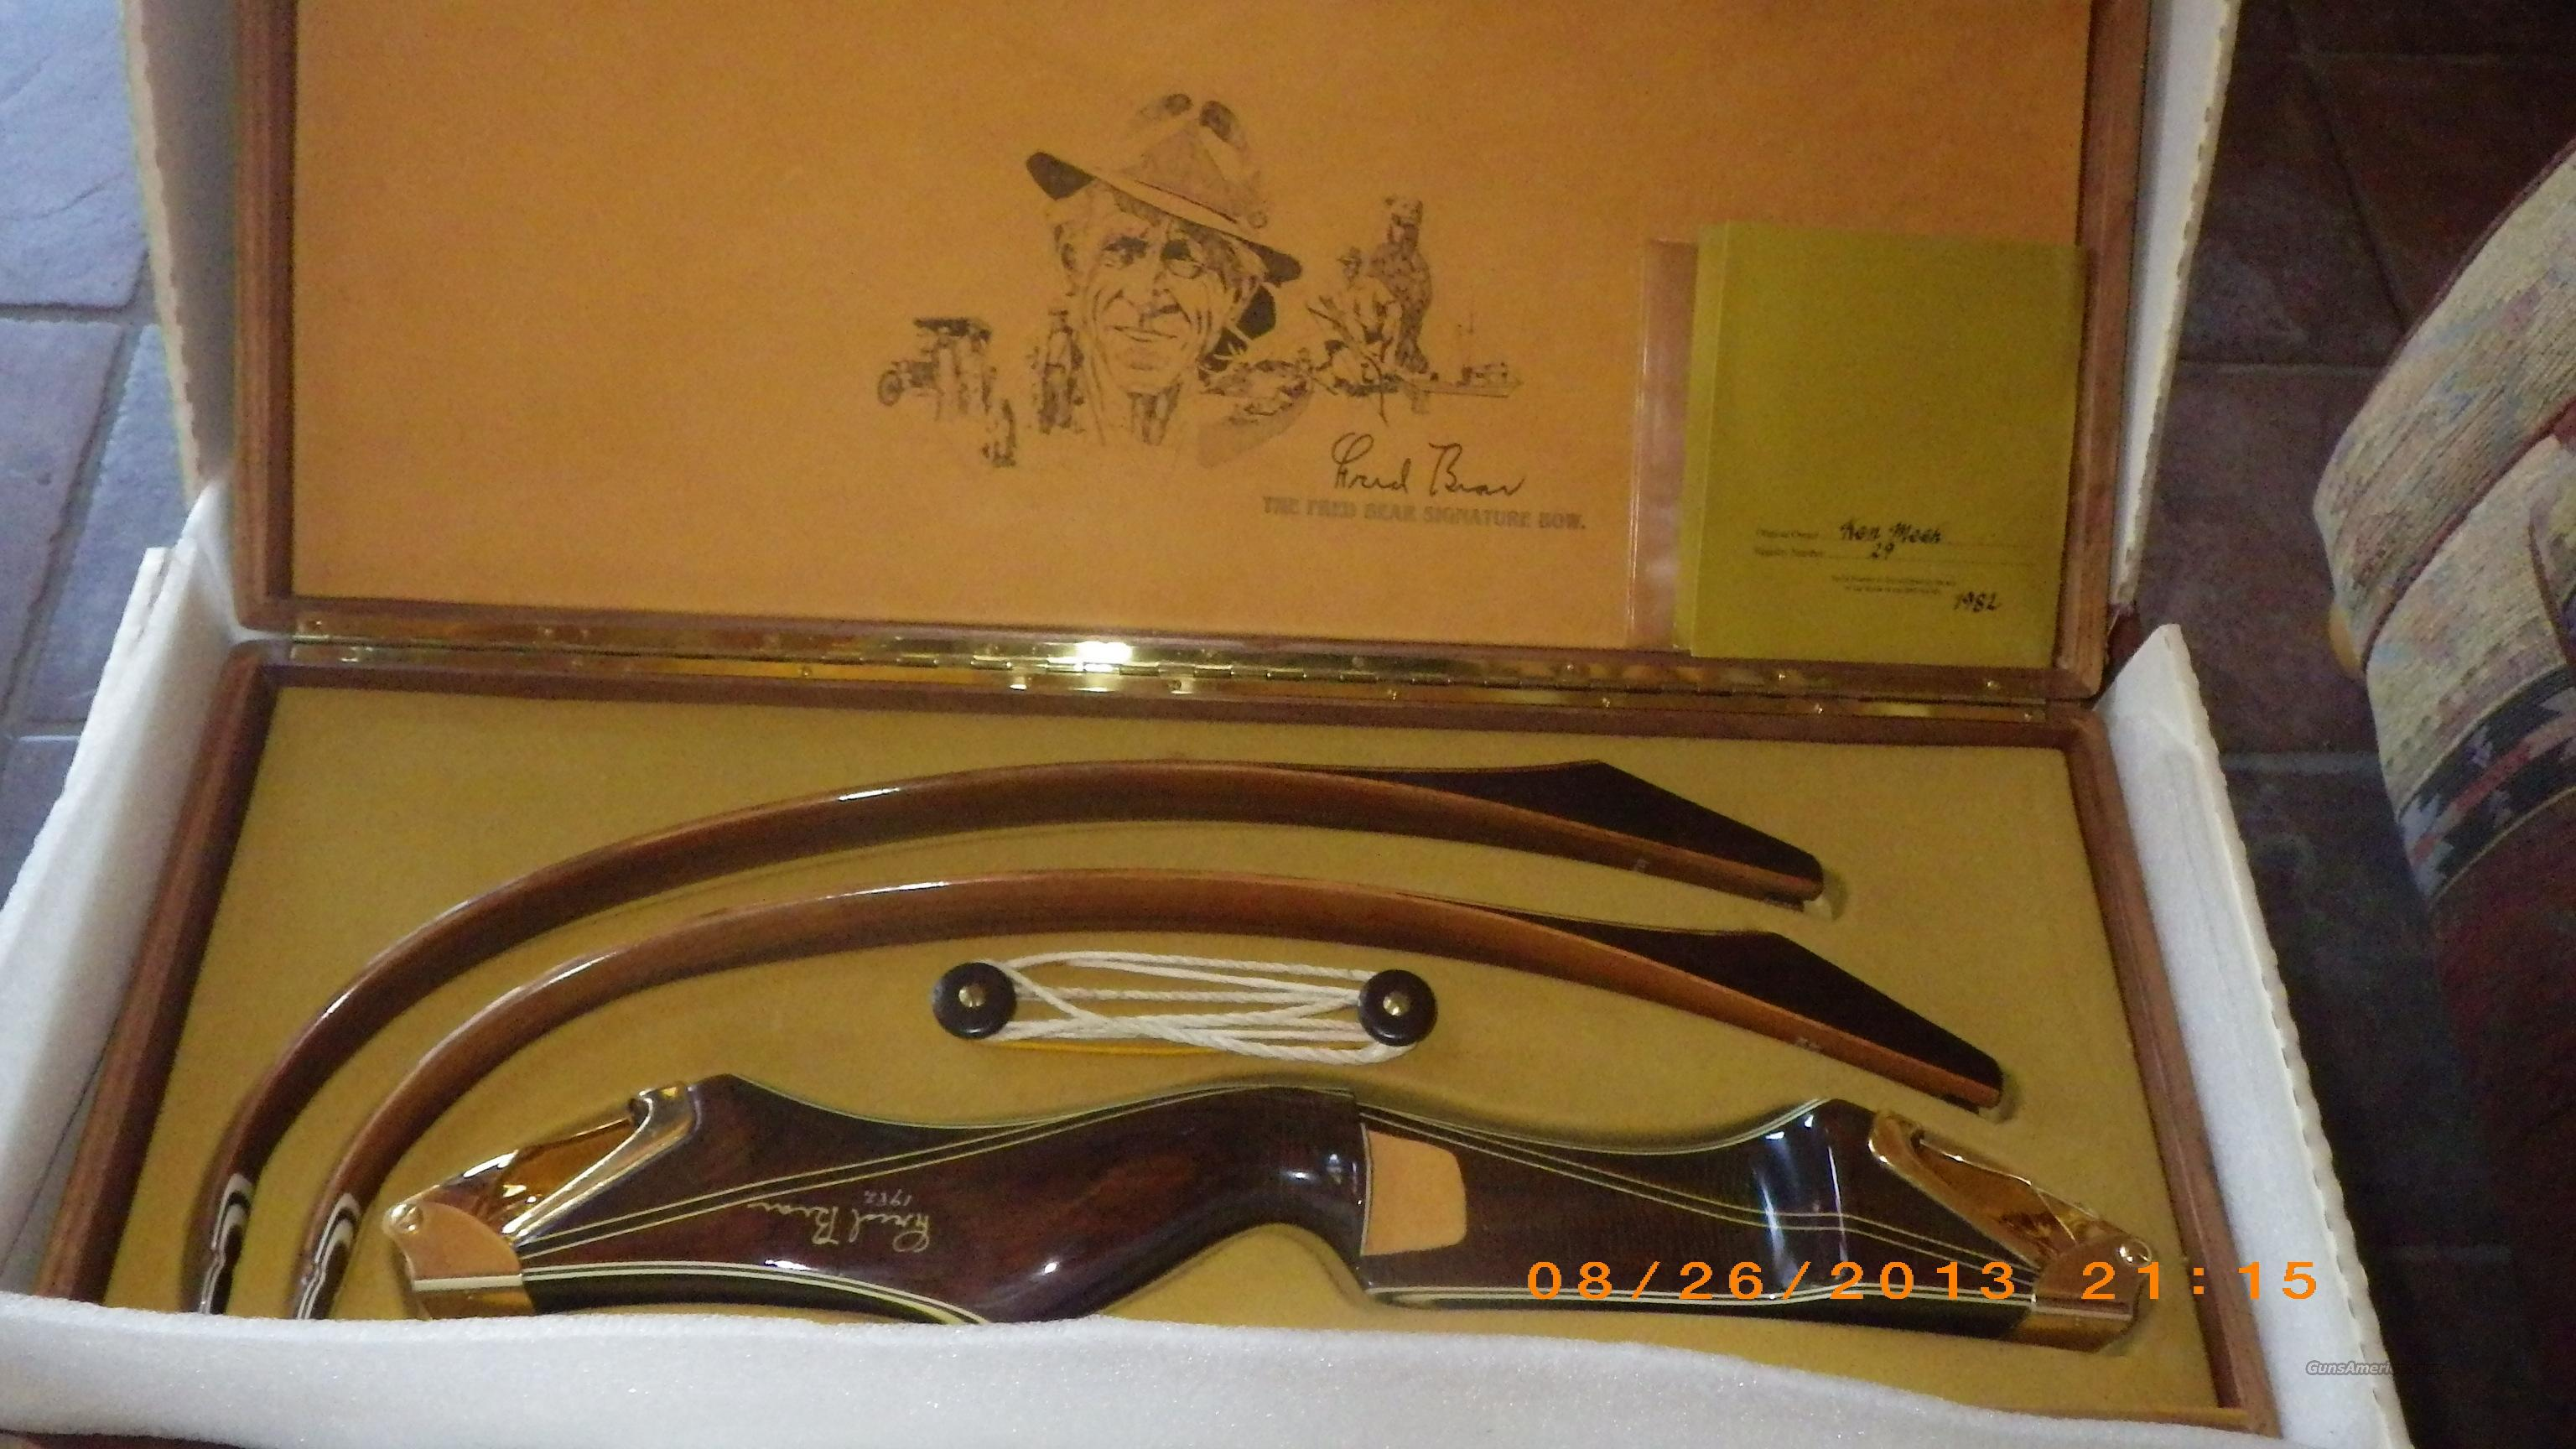 Fred bear signature bow 29 never assembled with wooden case and box